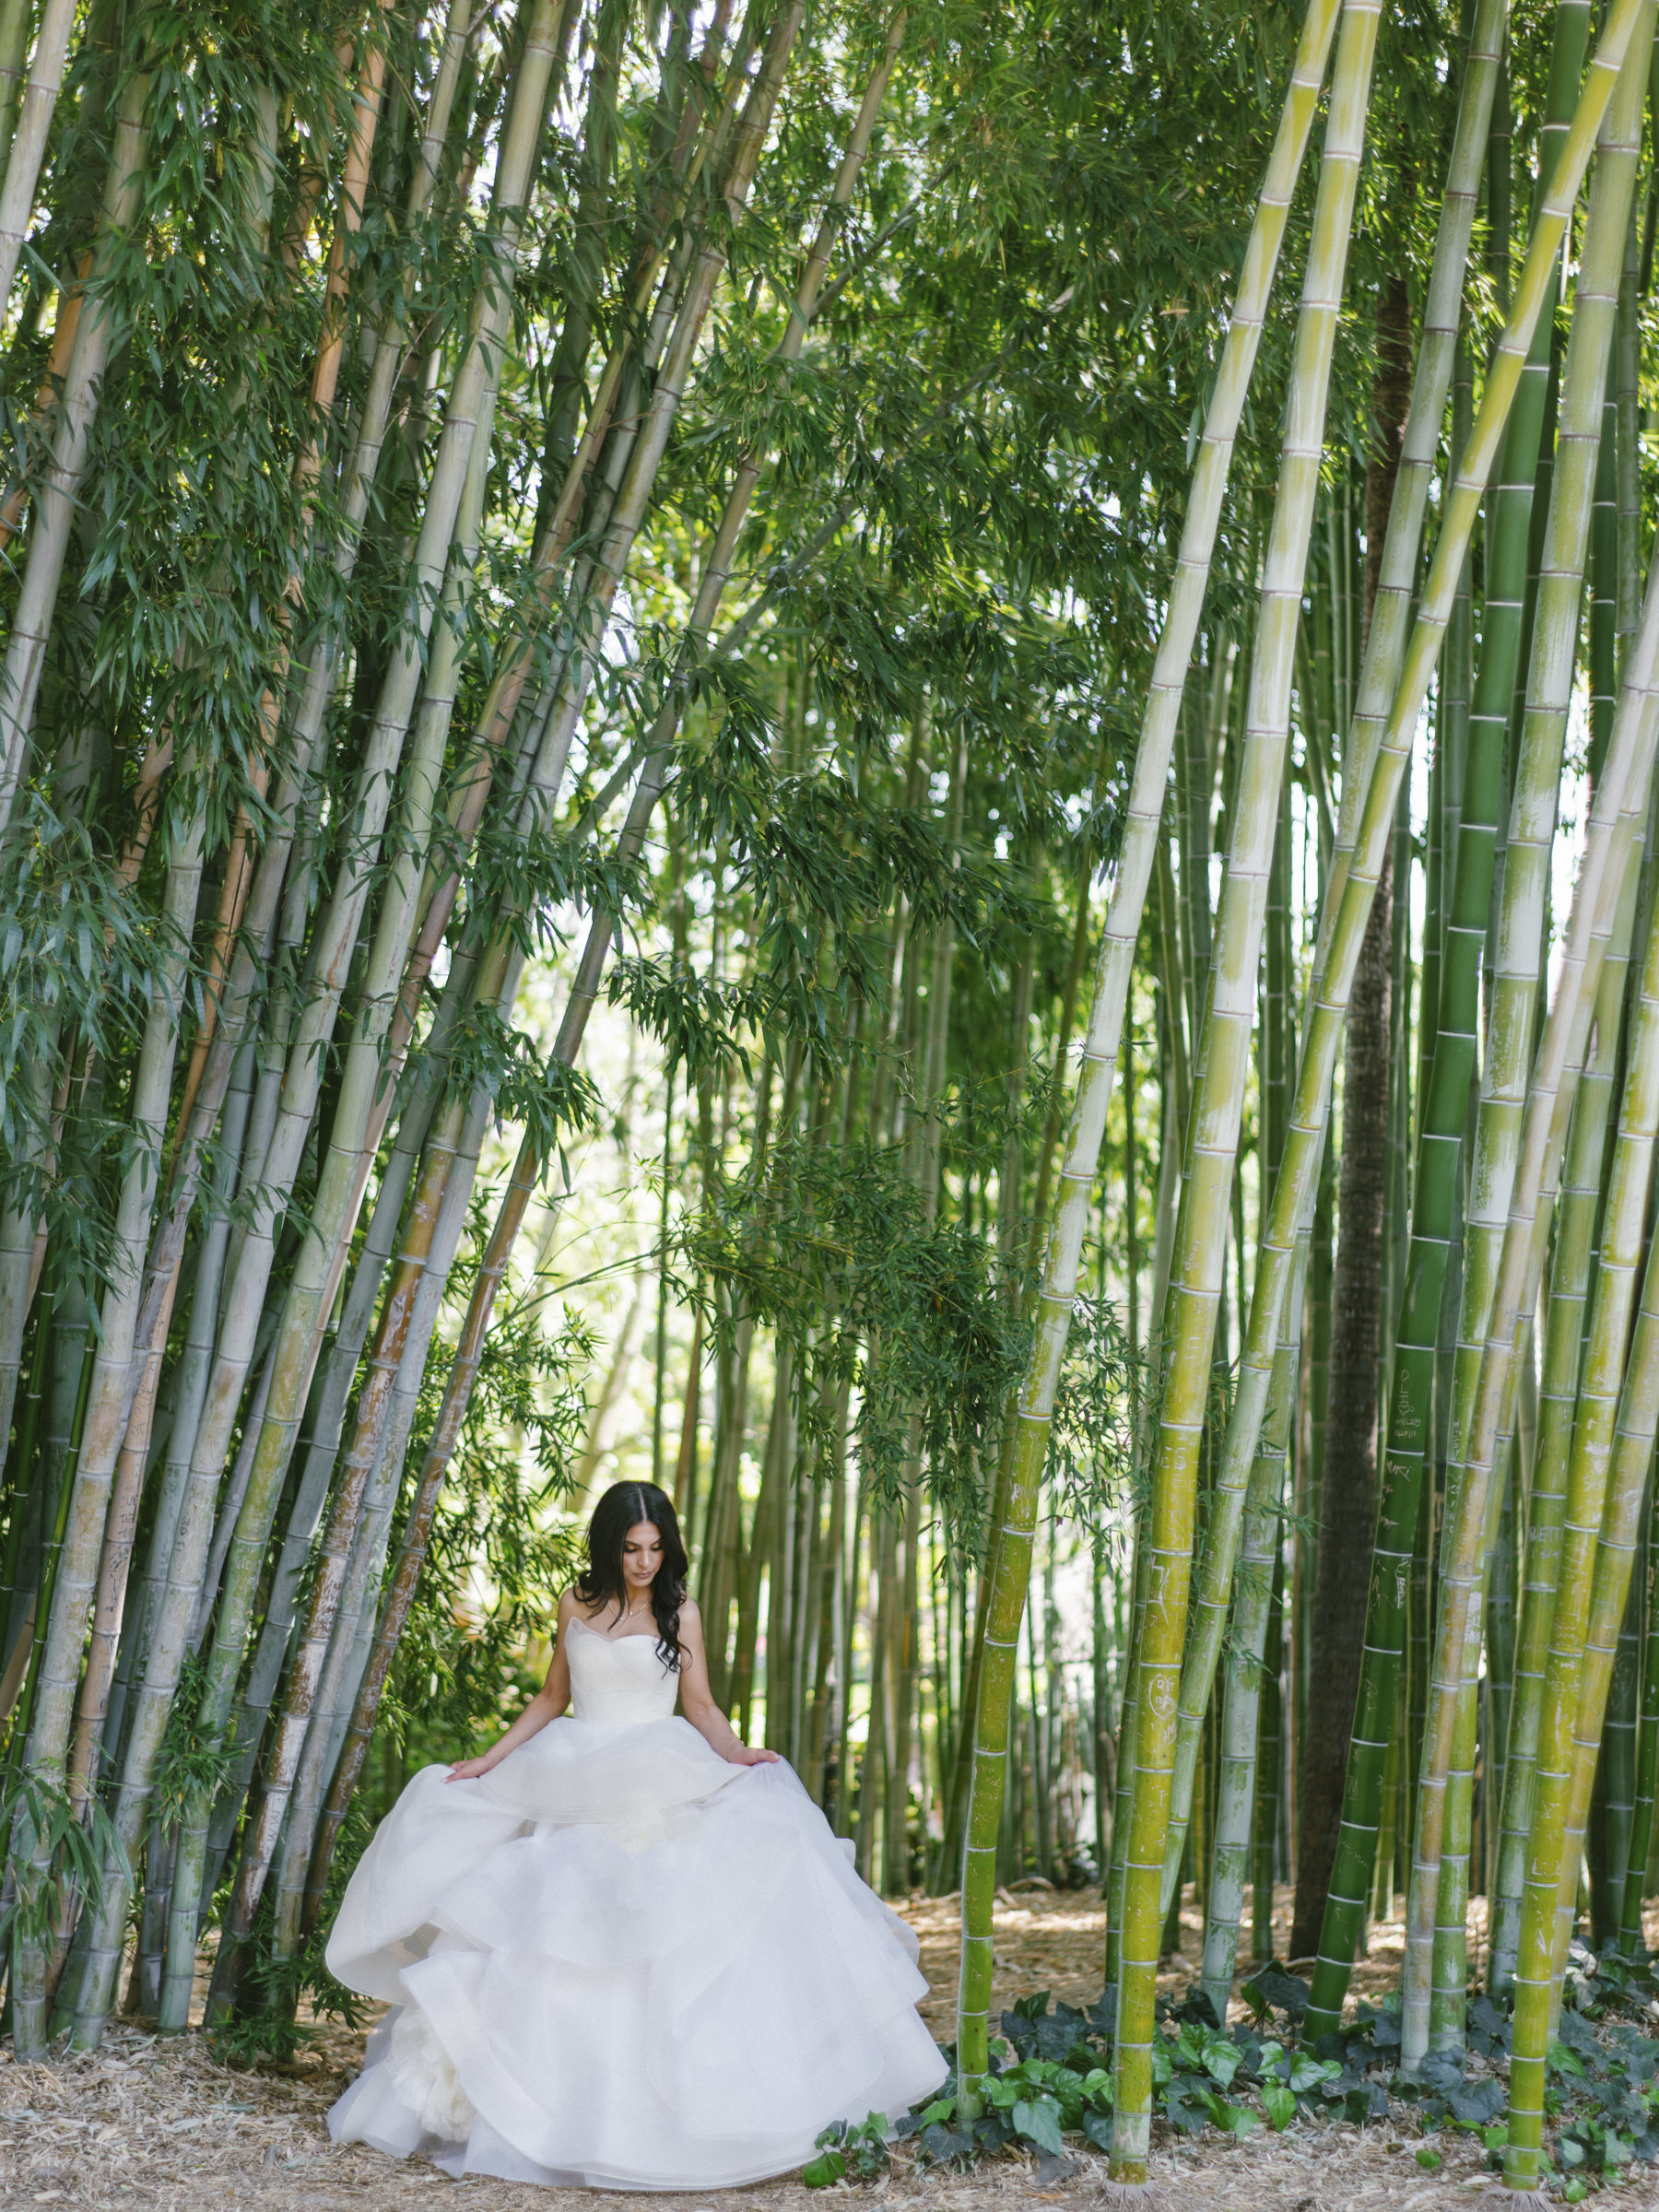 Luxury bride portrait against bamboo grove - photo by Amy and Stuart Photography